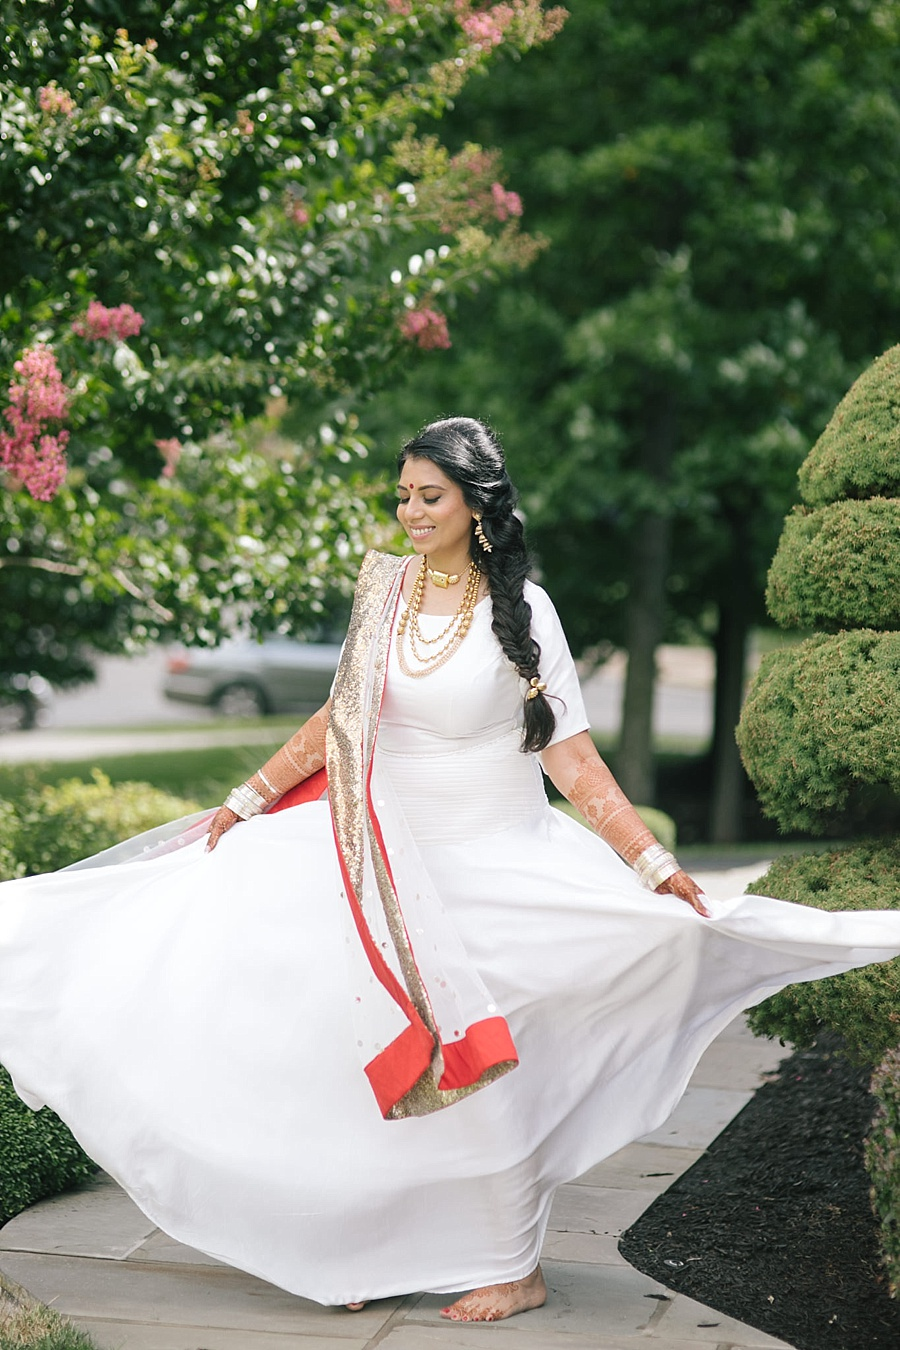 Nirali + Amit | Mendhi, Vidhi and Sangeet | Washington DC Wedding Photography